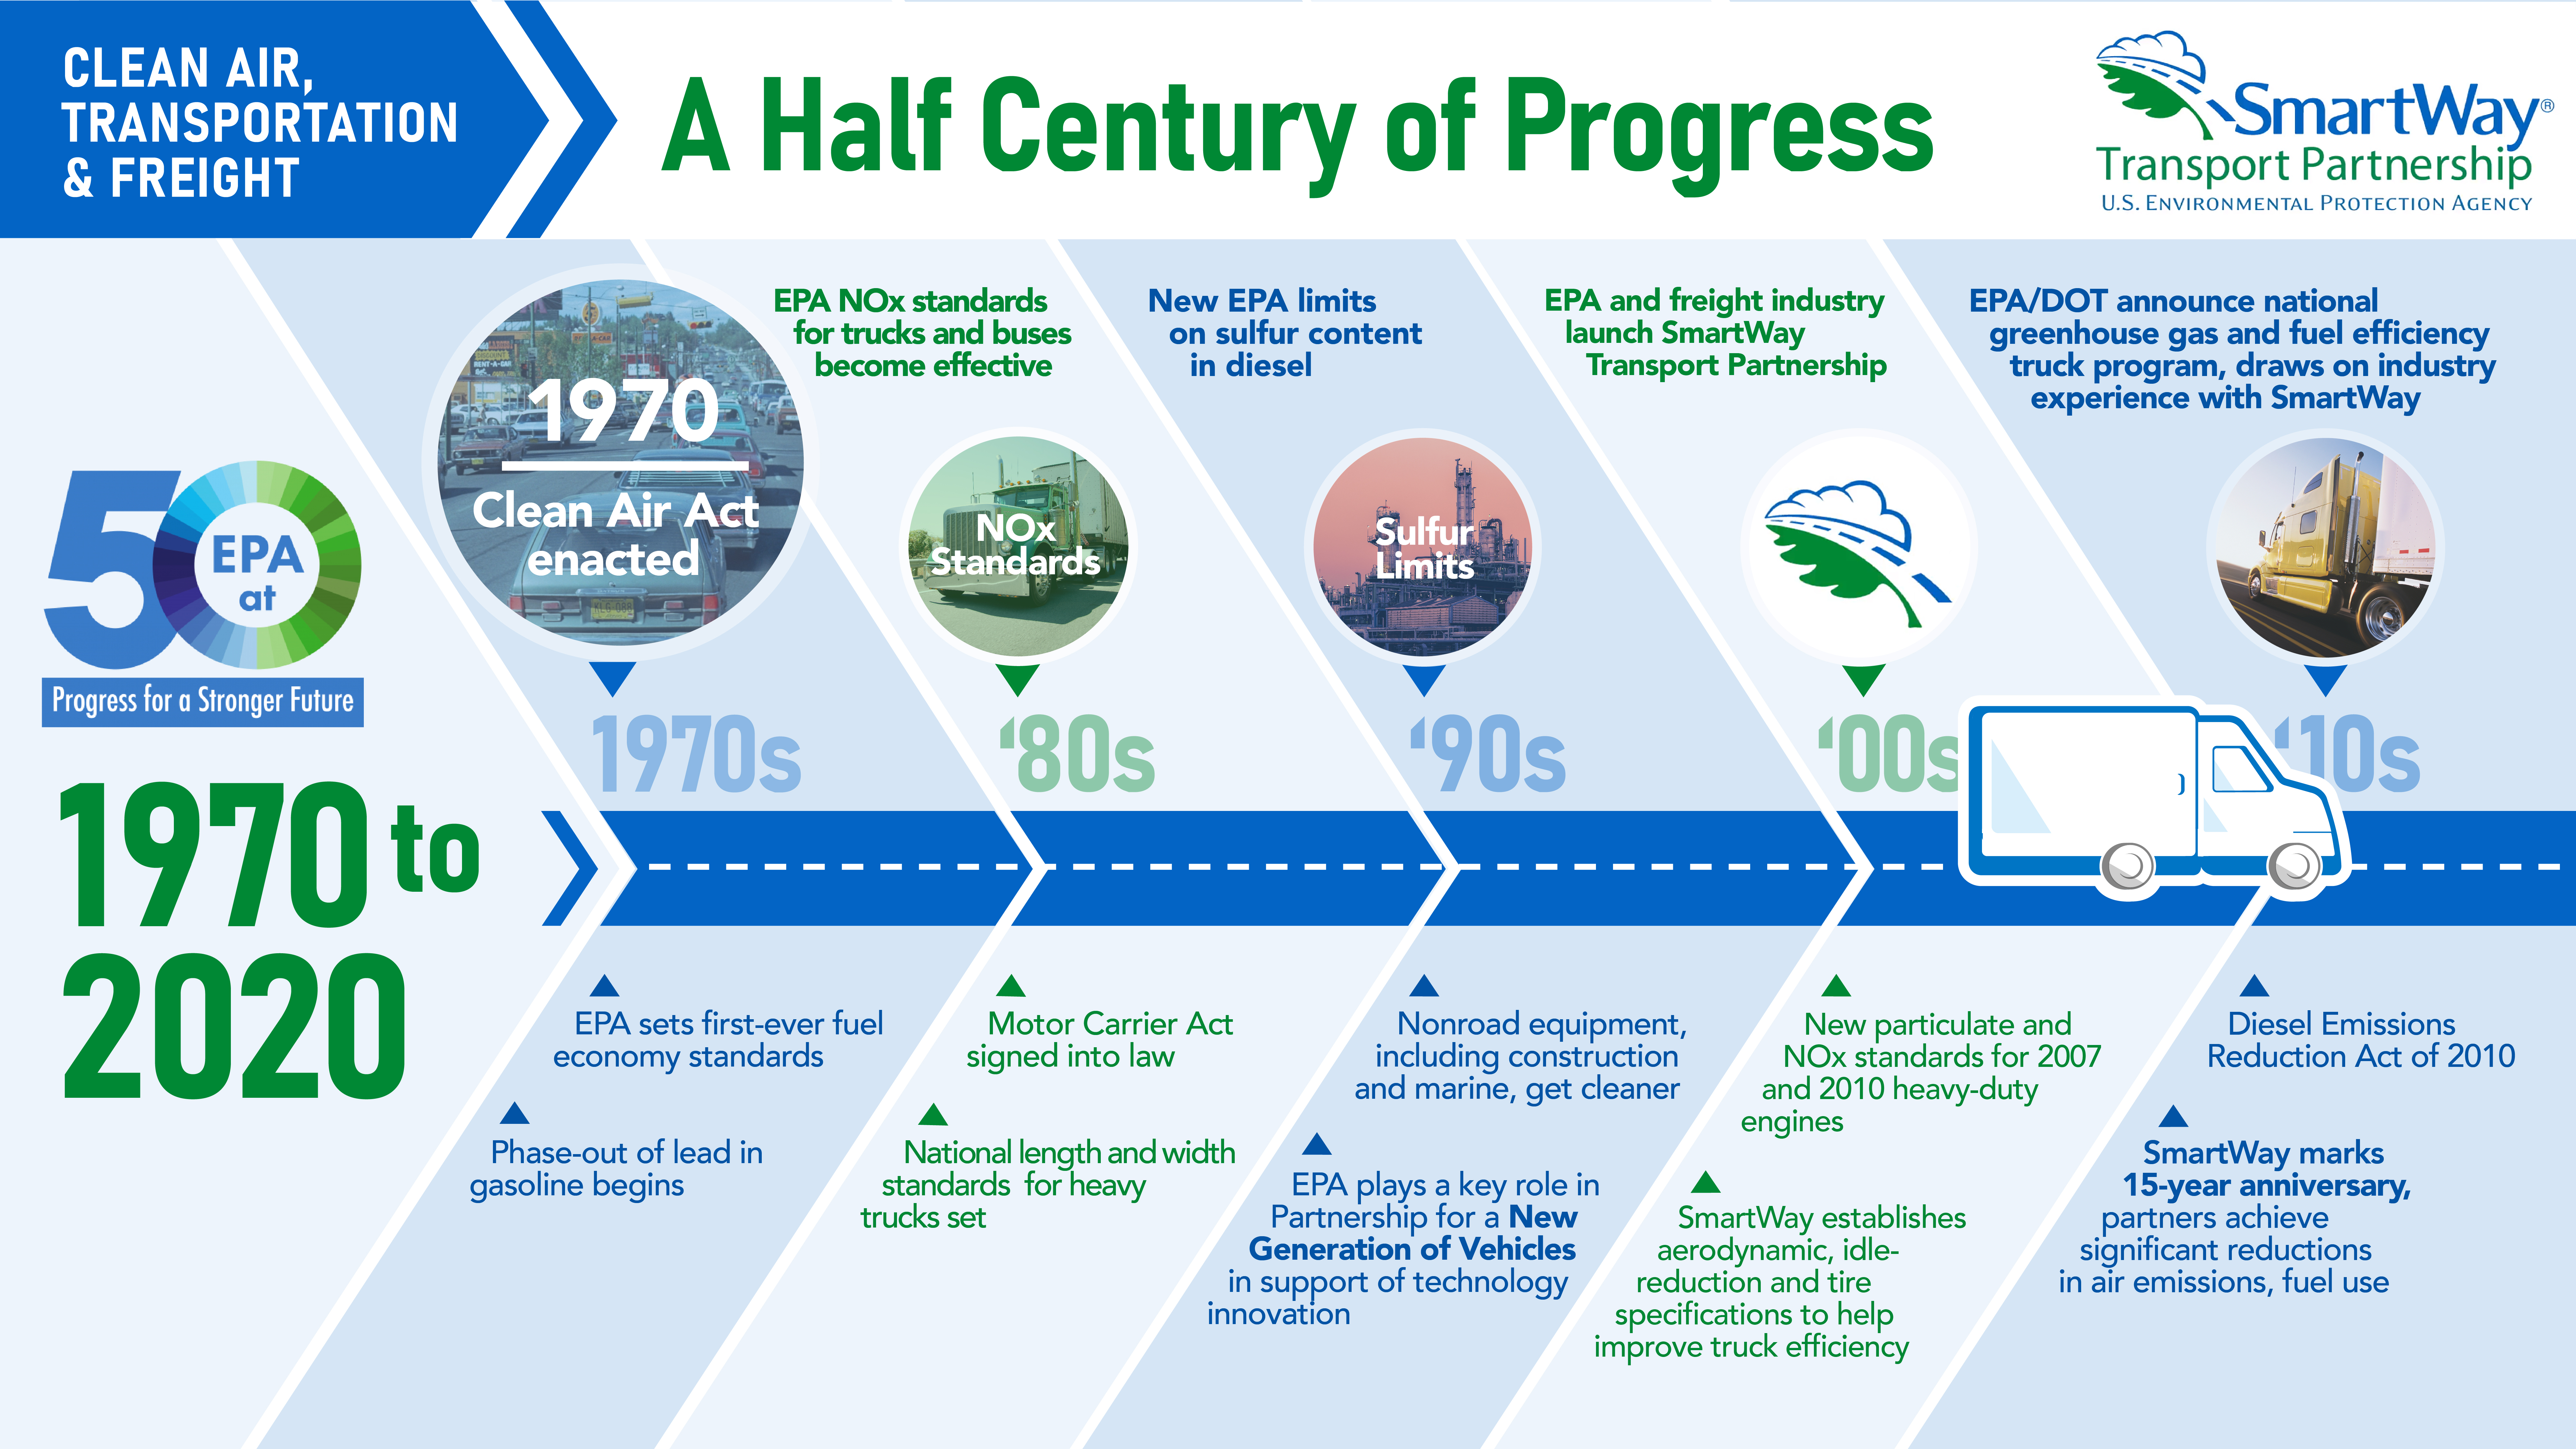 """This is an image of """"a half century of progress"""" by the EPA, displaying clean air limits and ordinances from 1970 to 2020."""